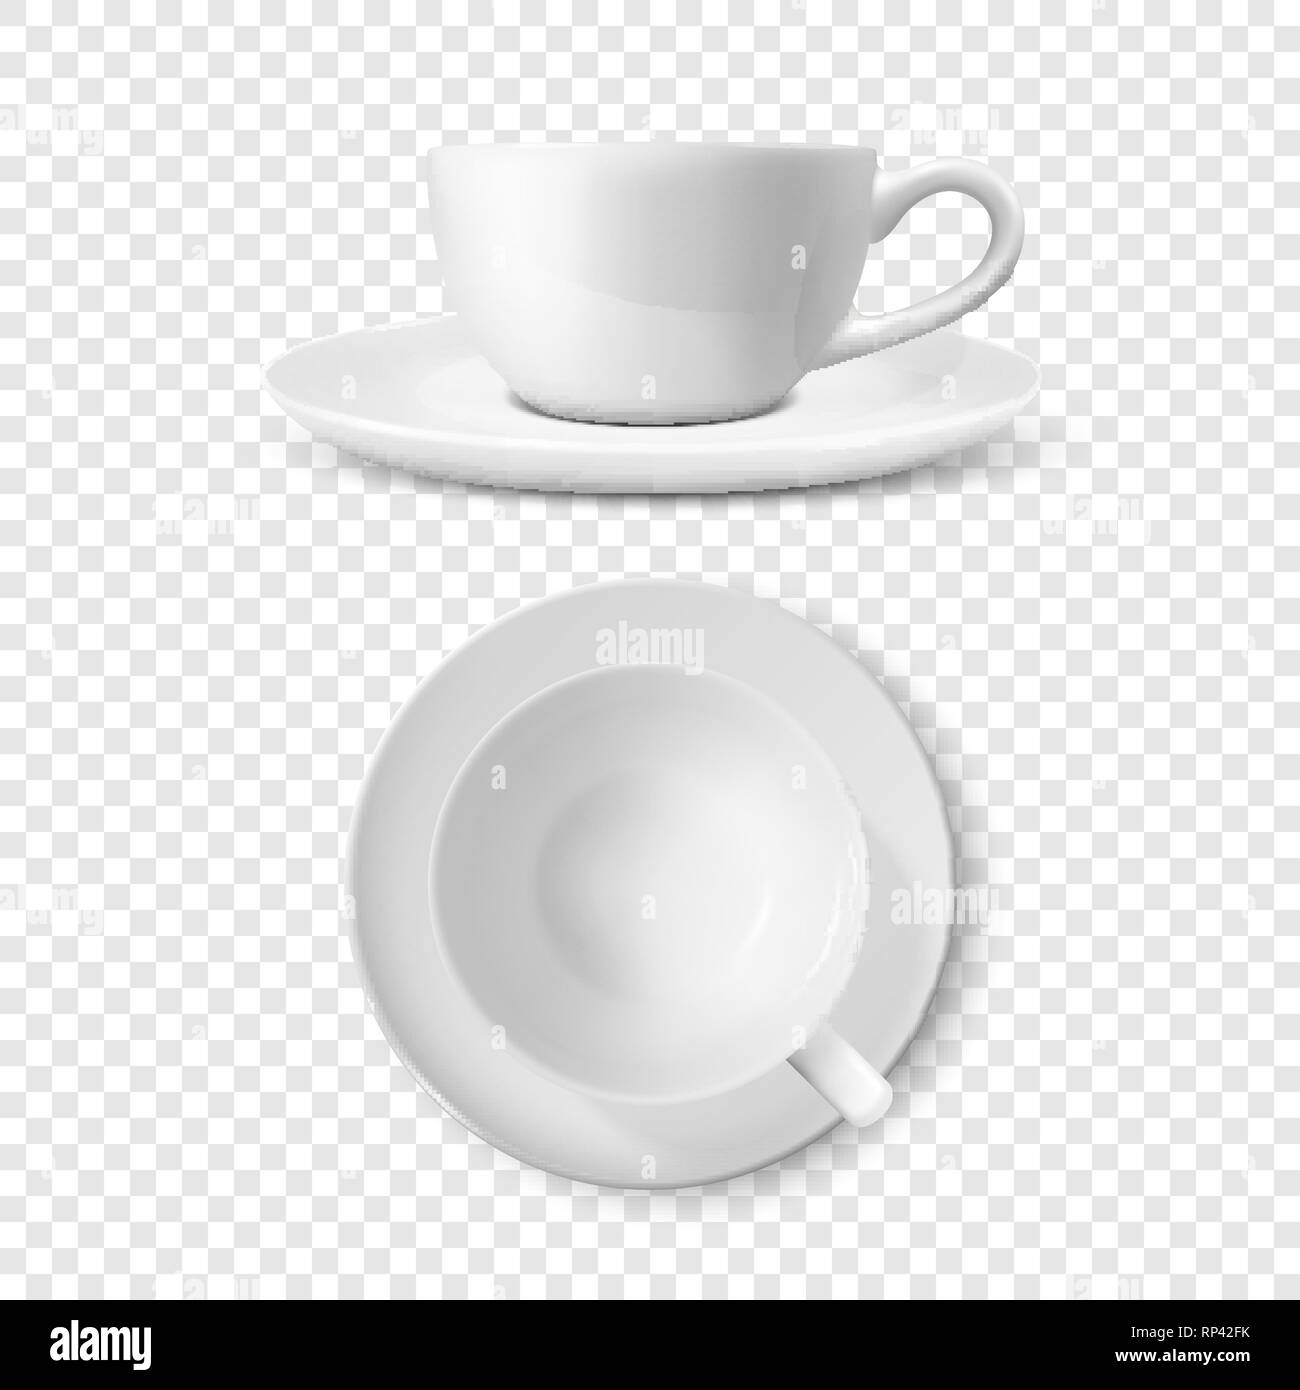 Realistic Vector 3d Glossy Blank White Coffee Tea Cup Mug Set Closeup Isolated Design Template Of Porcelain Cup Or Mug And Saucer Plate For Branding Stock Vector Image Art Alamy